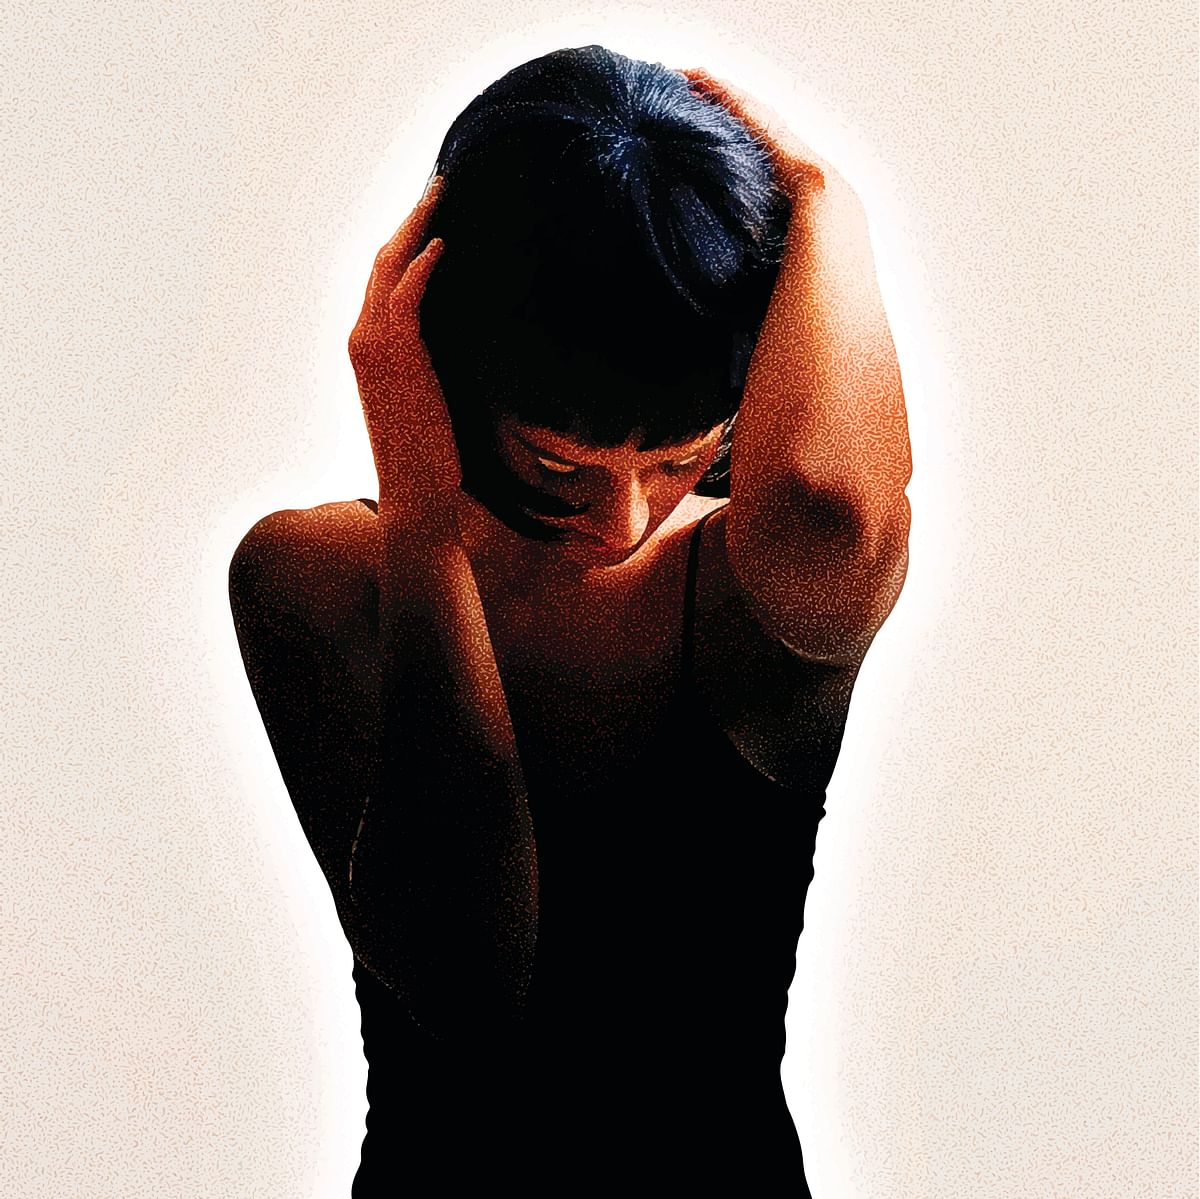 'Crippling Anxiety or Persistent Pain: Don't Know What Came First'